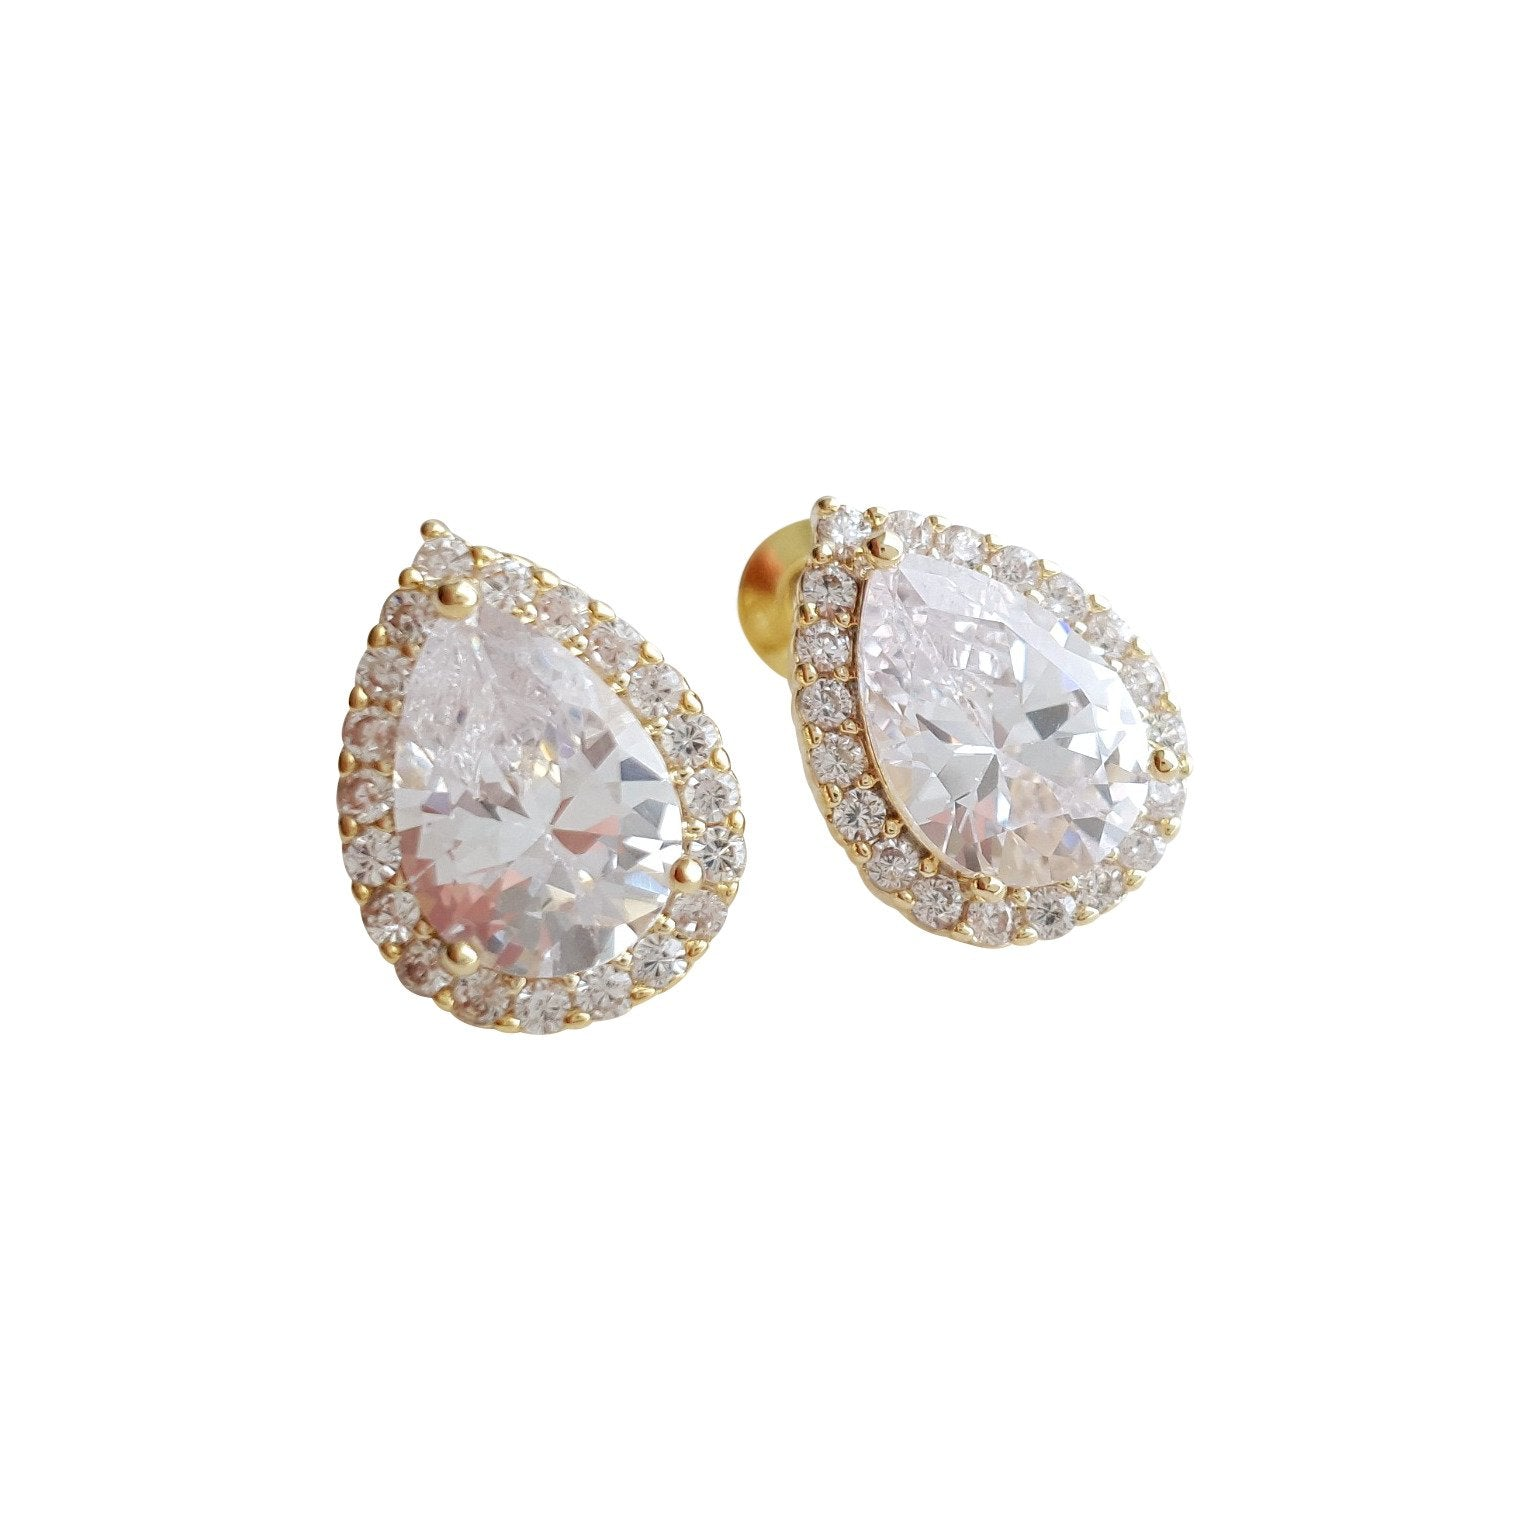 Gold Teardrop Stud Earrings- Emma